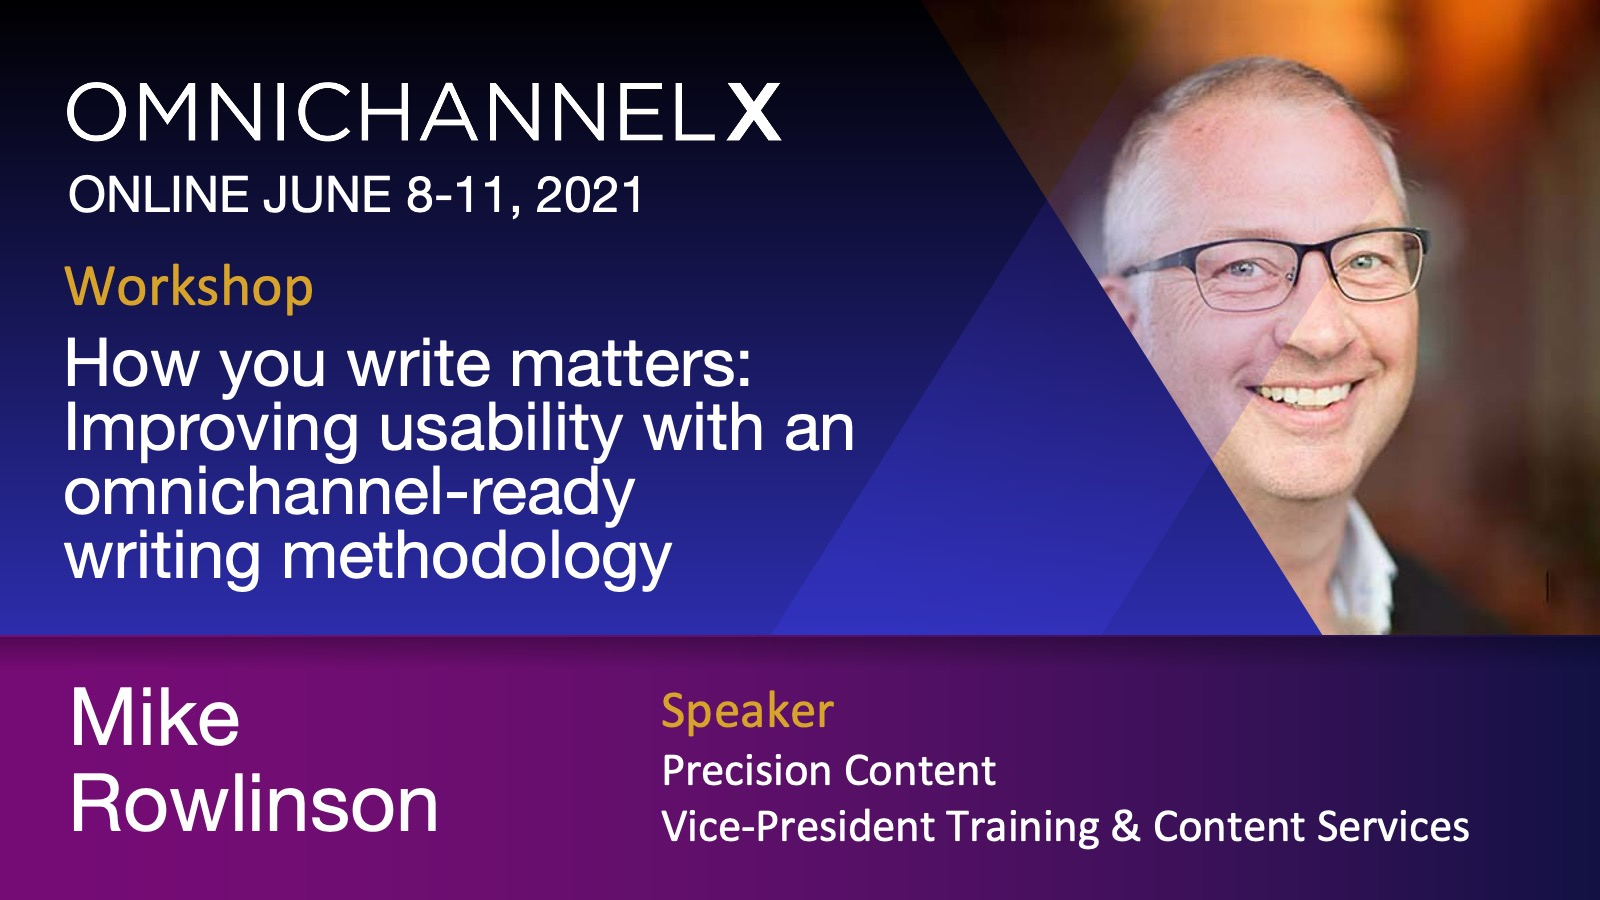 Mike Rowlinson. OmnichannelX. Online June 8-11, 2021. Workshop: How you write matters: Improving usability with an omnichannel-ready methodology